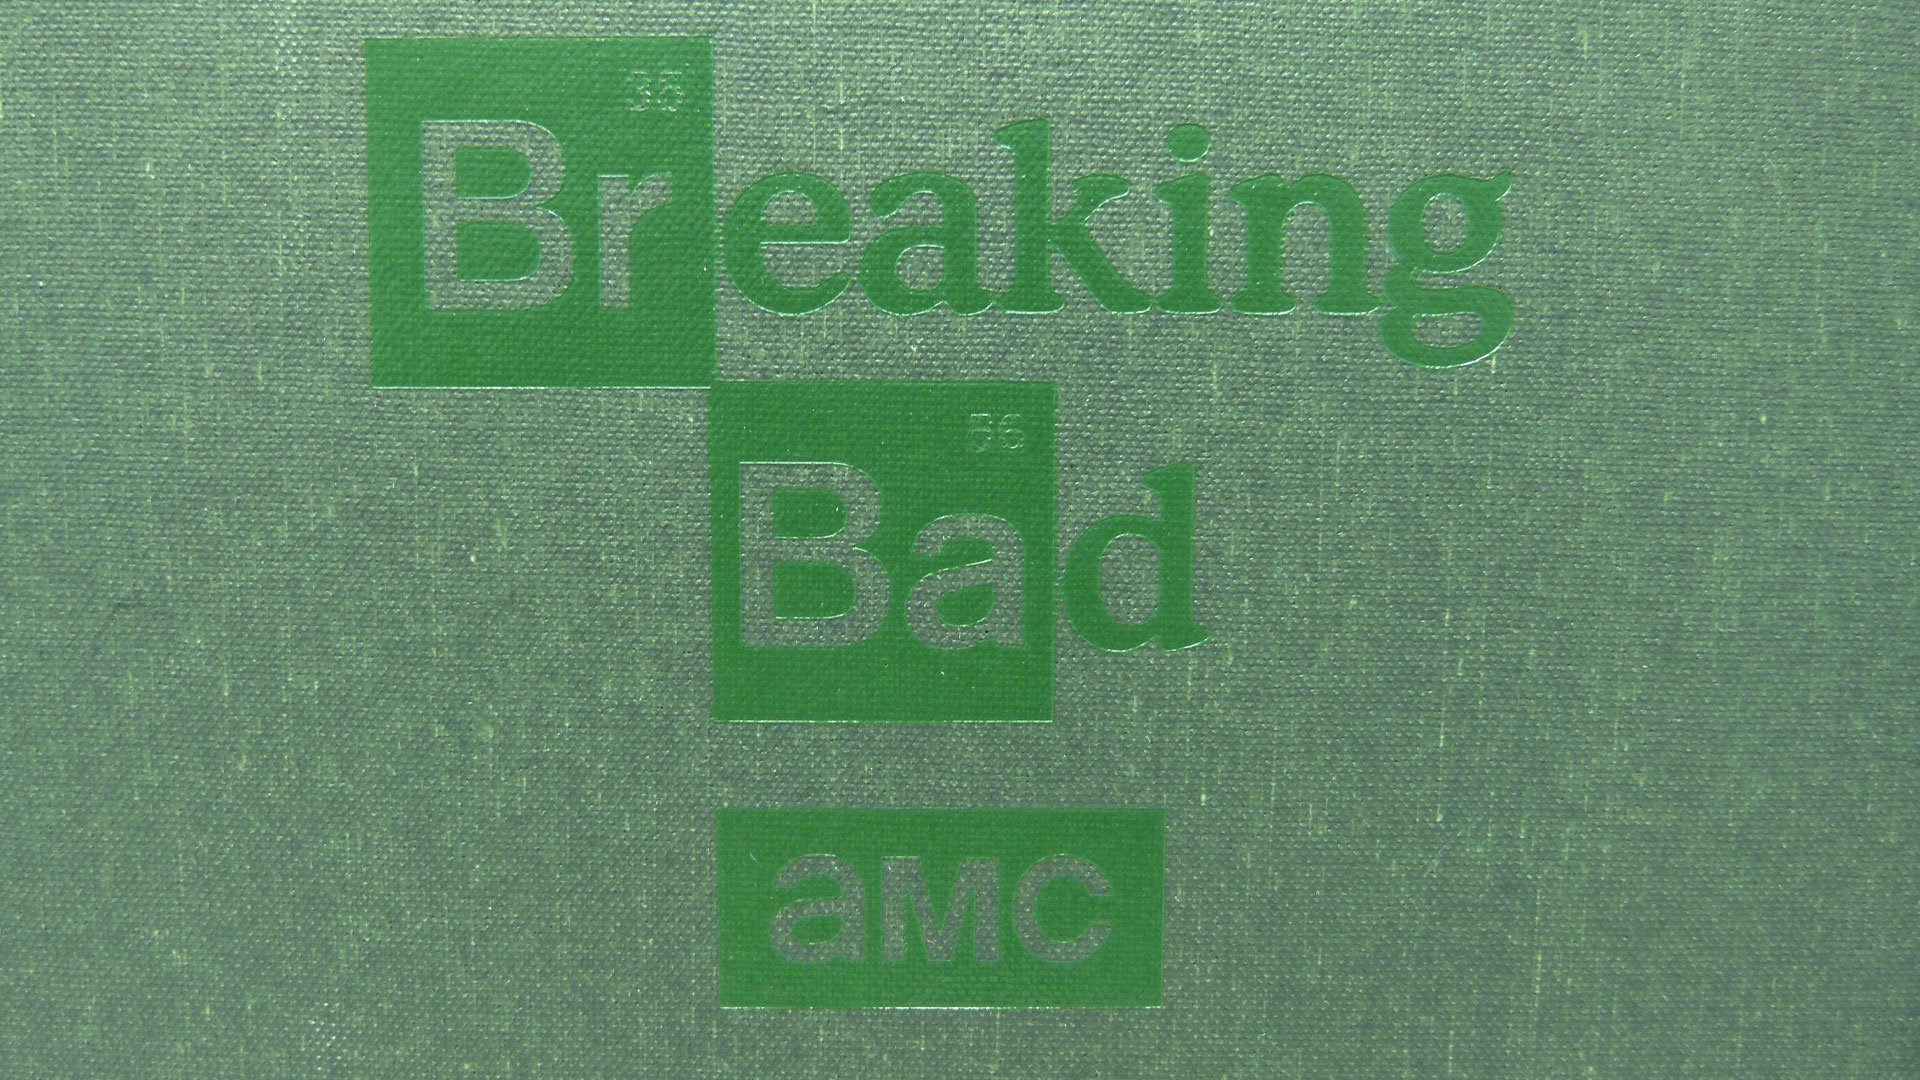 Explosive Packaging Experience - 'Breaking Bad' Desk Ornament - PaperSpecs